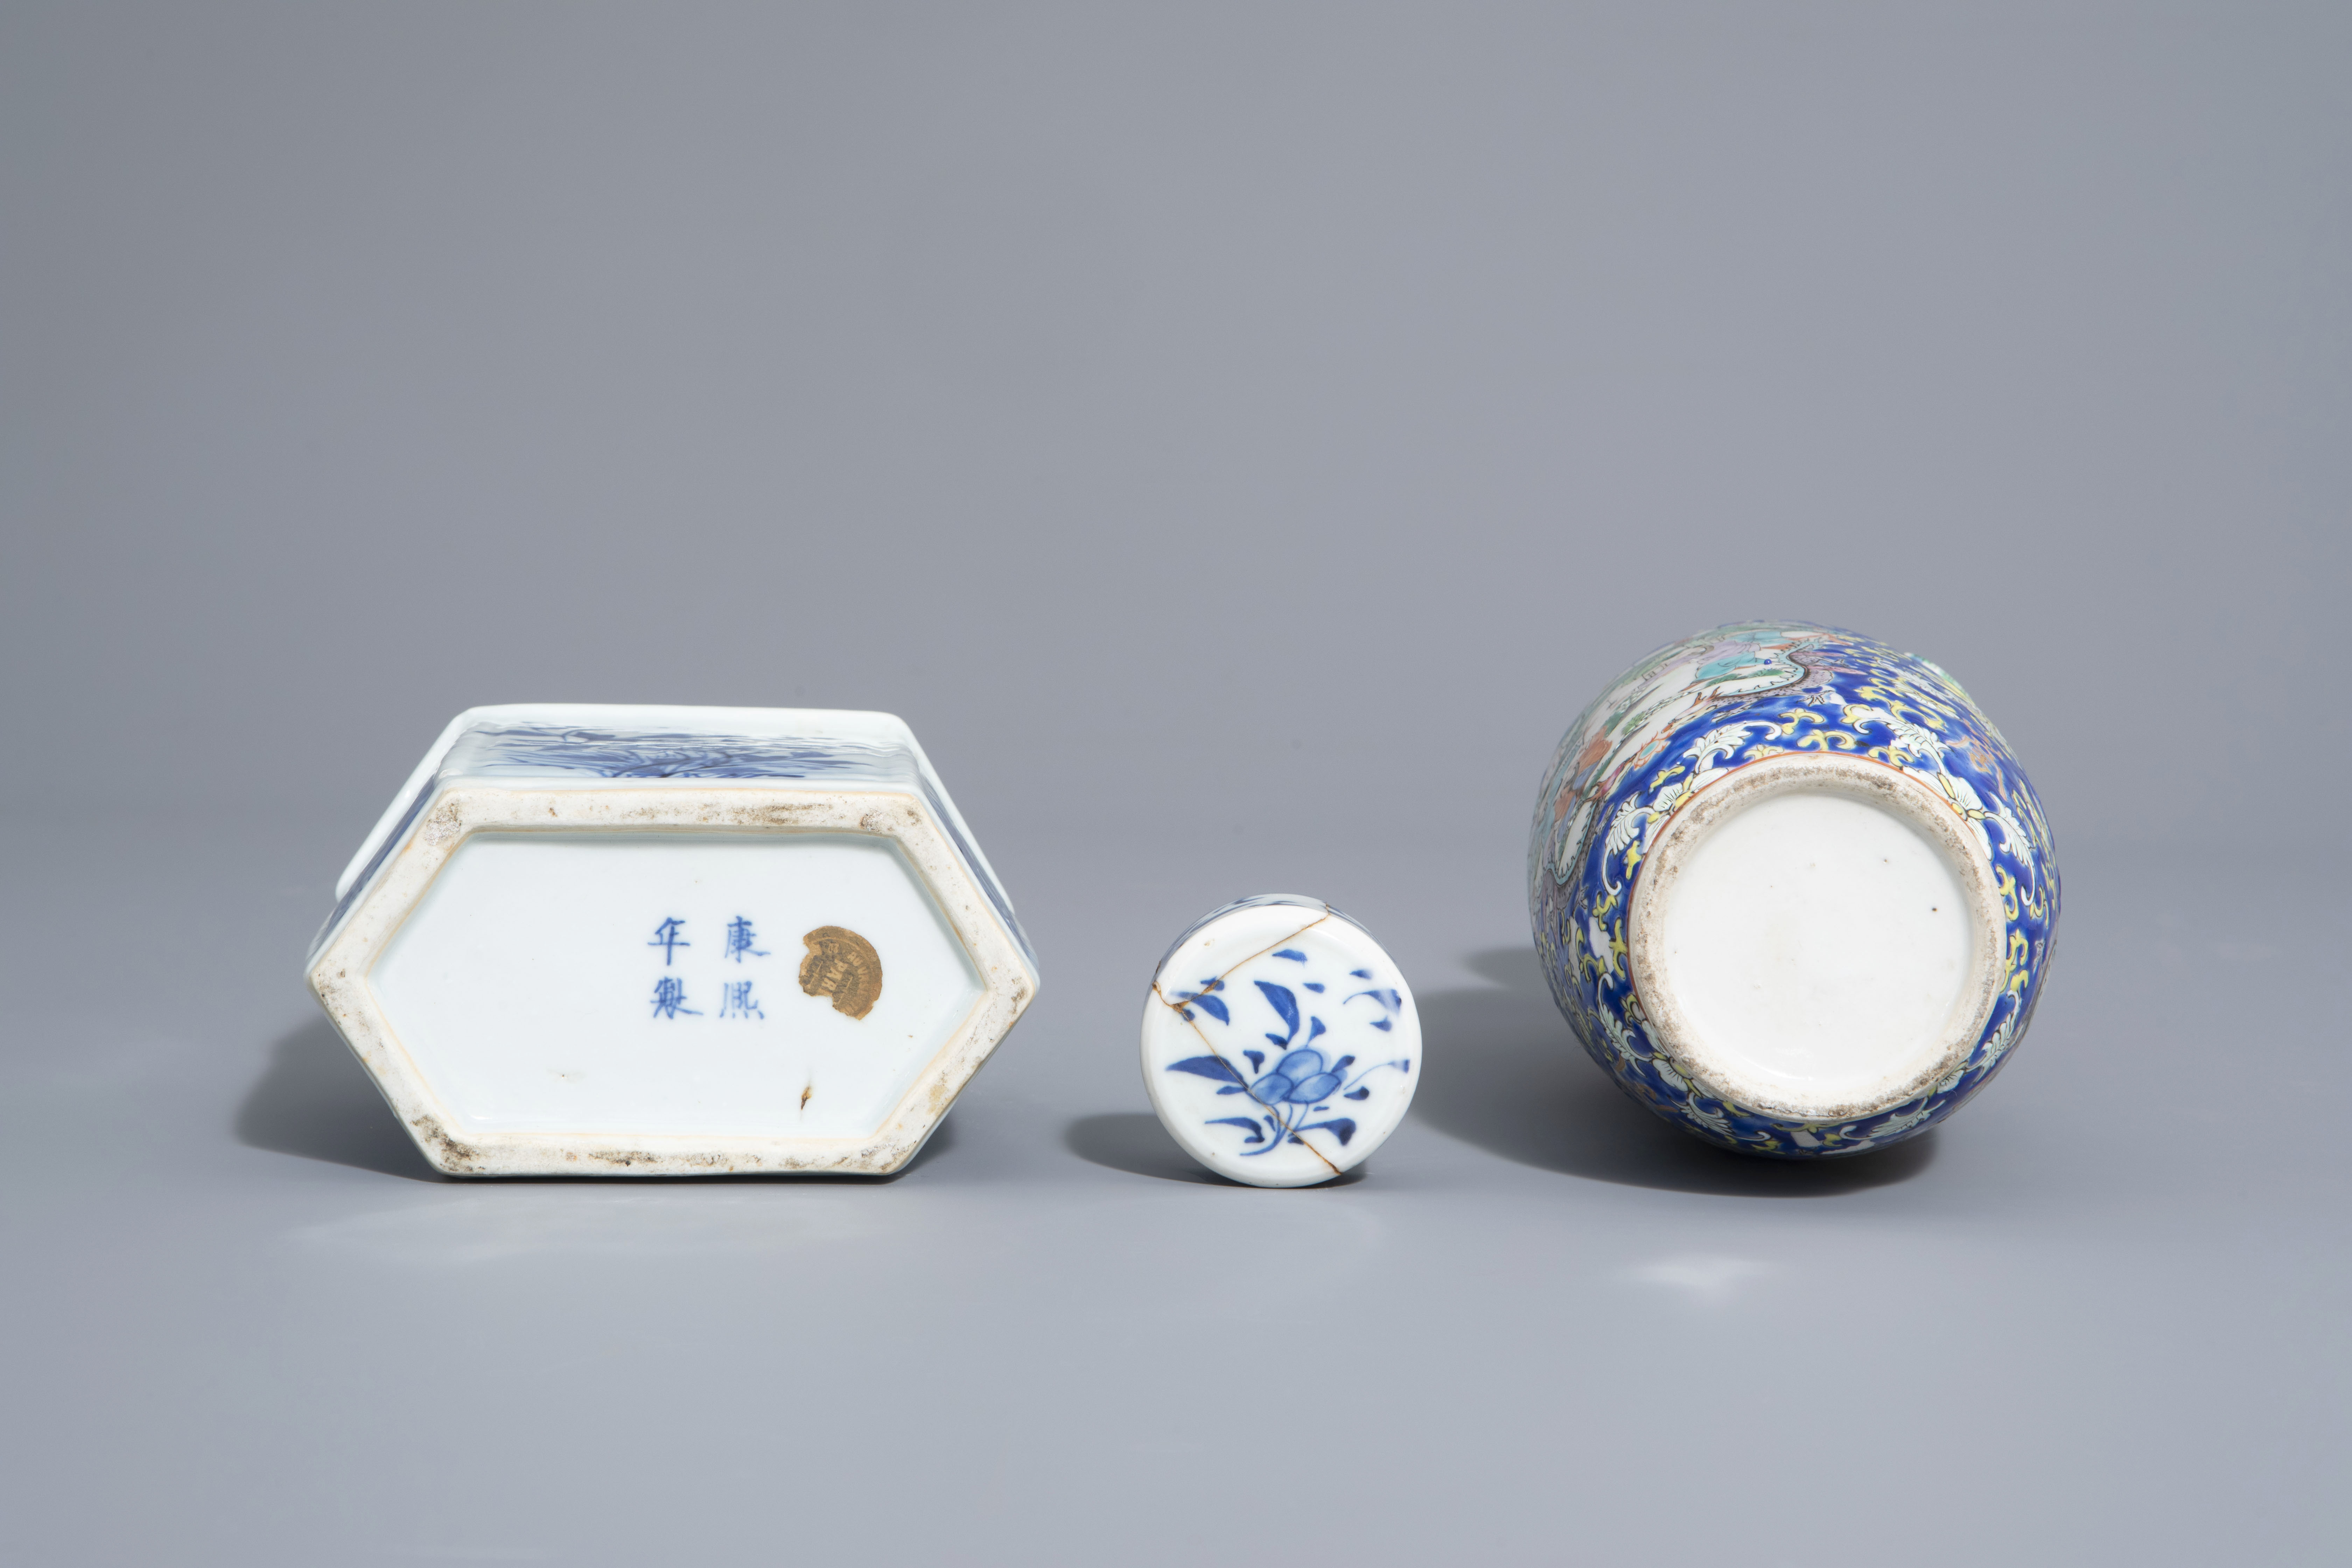 A varied collection of Chinese blue and white and famille rose porcelain, 19th/20th C. - Image 7 of 15